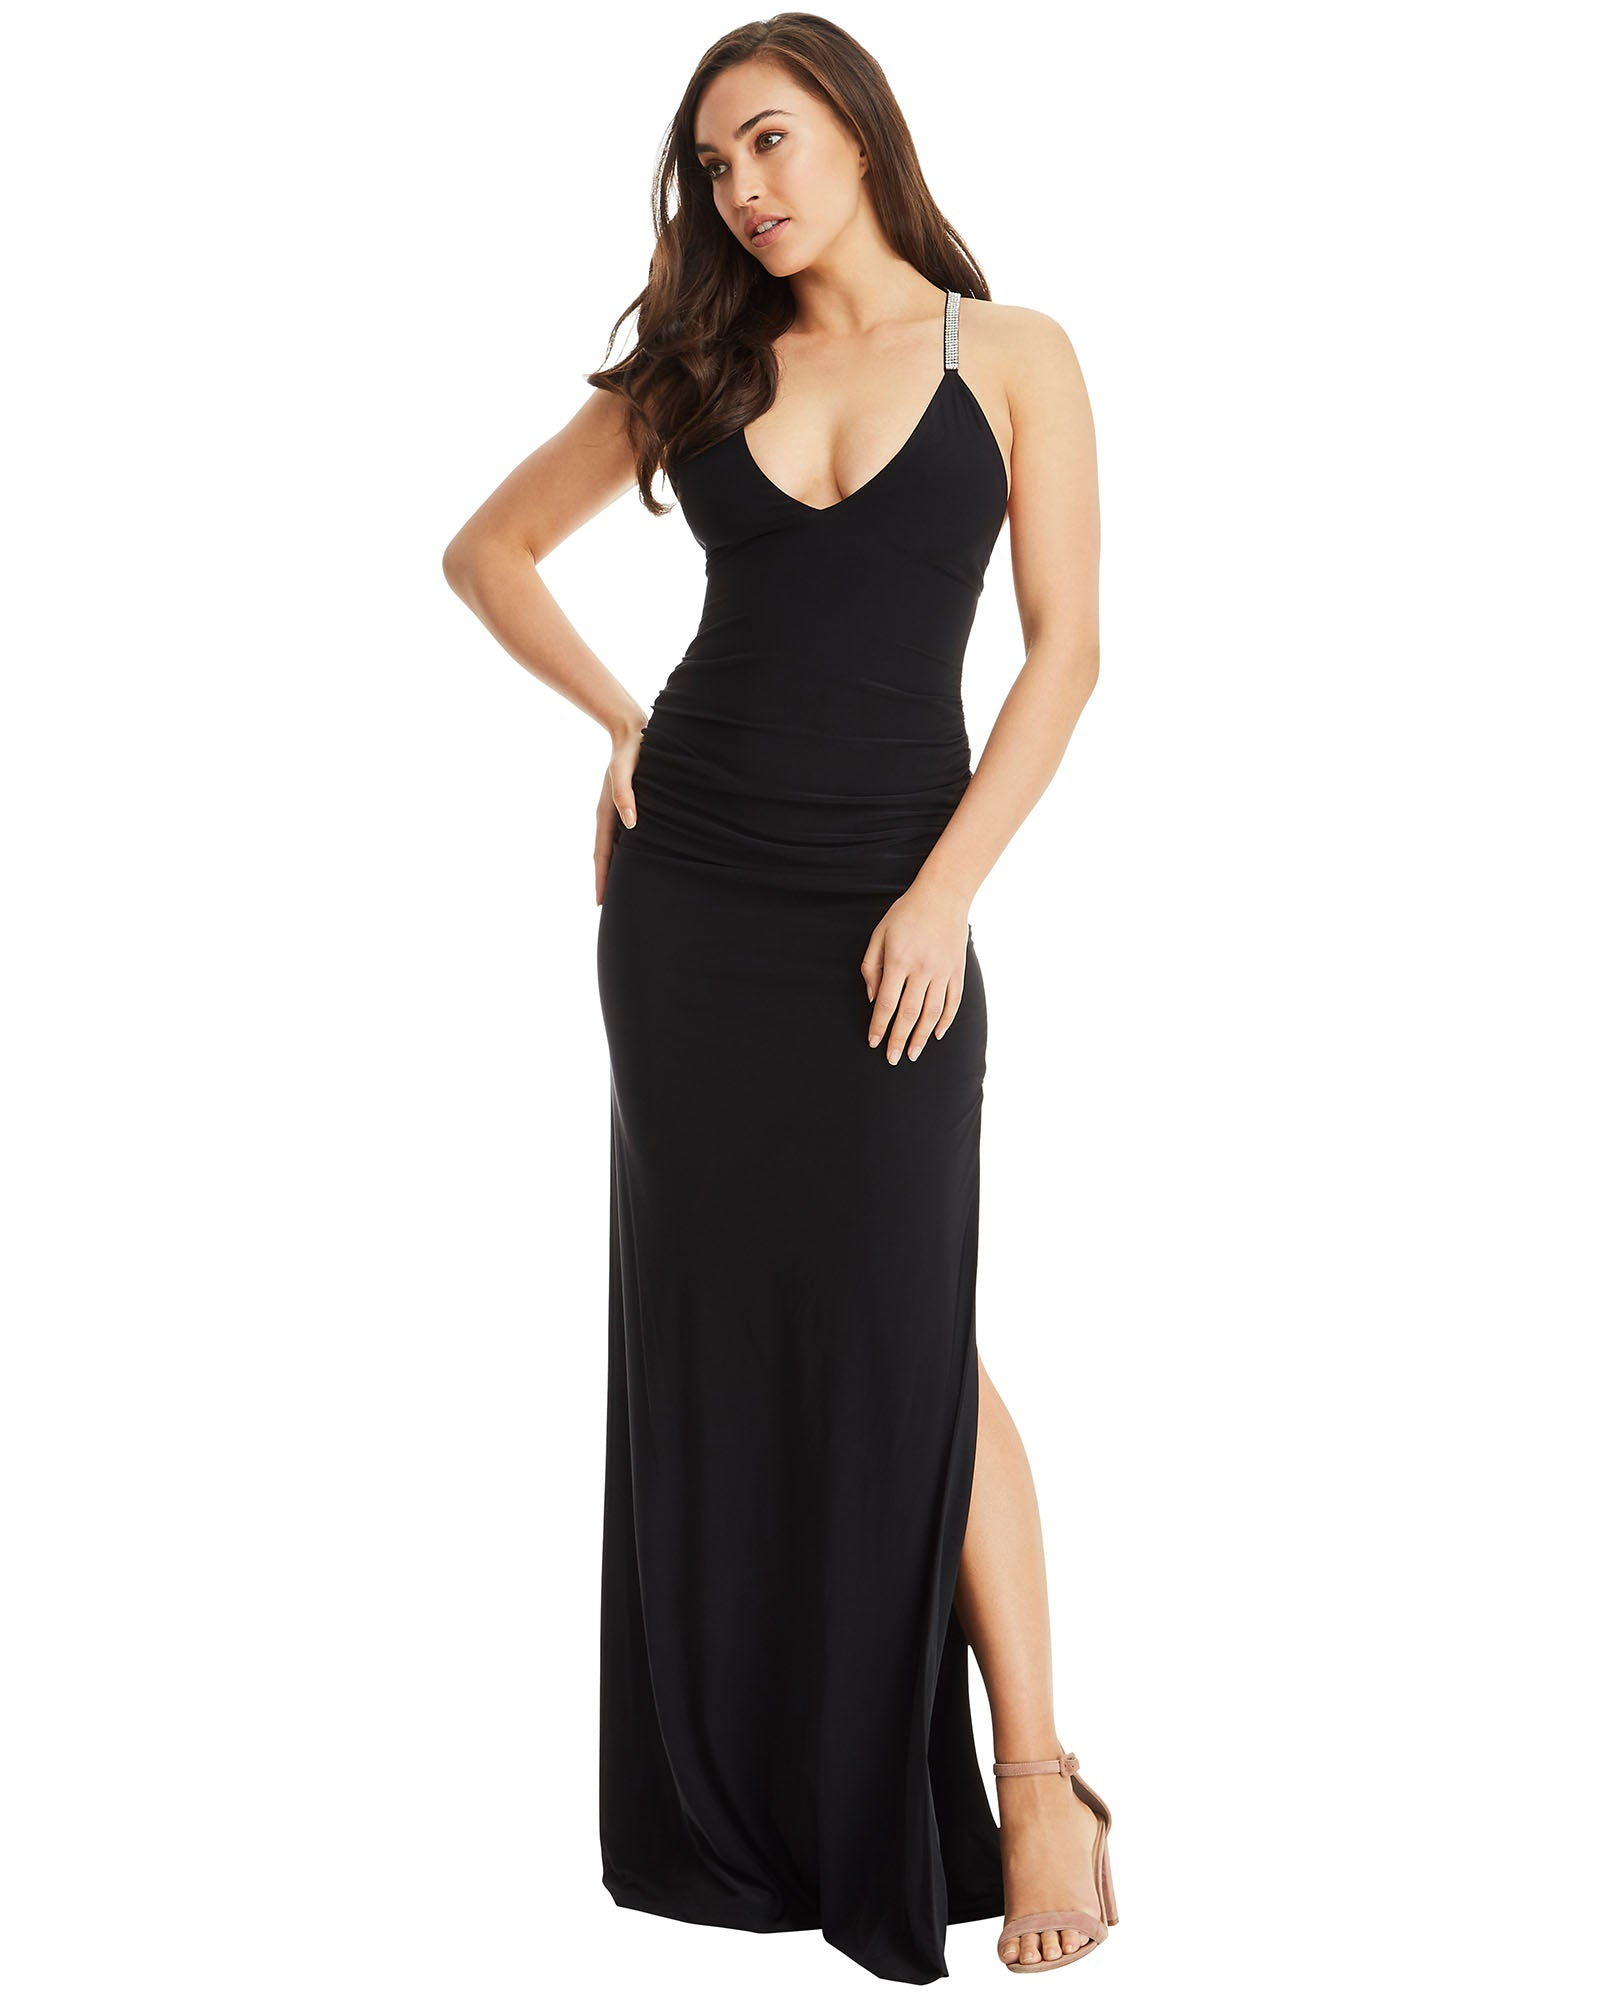 Cross Strap Evening Dress - Black